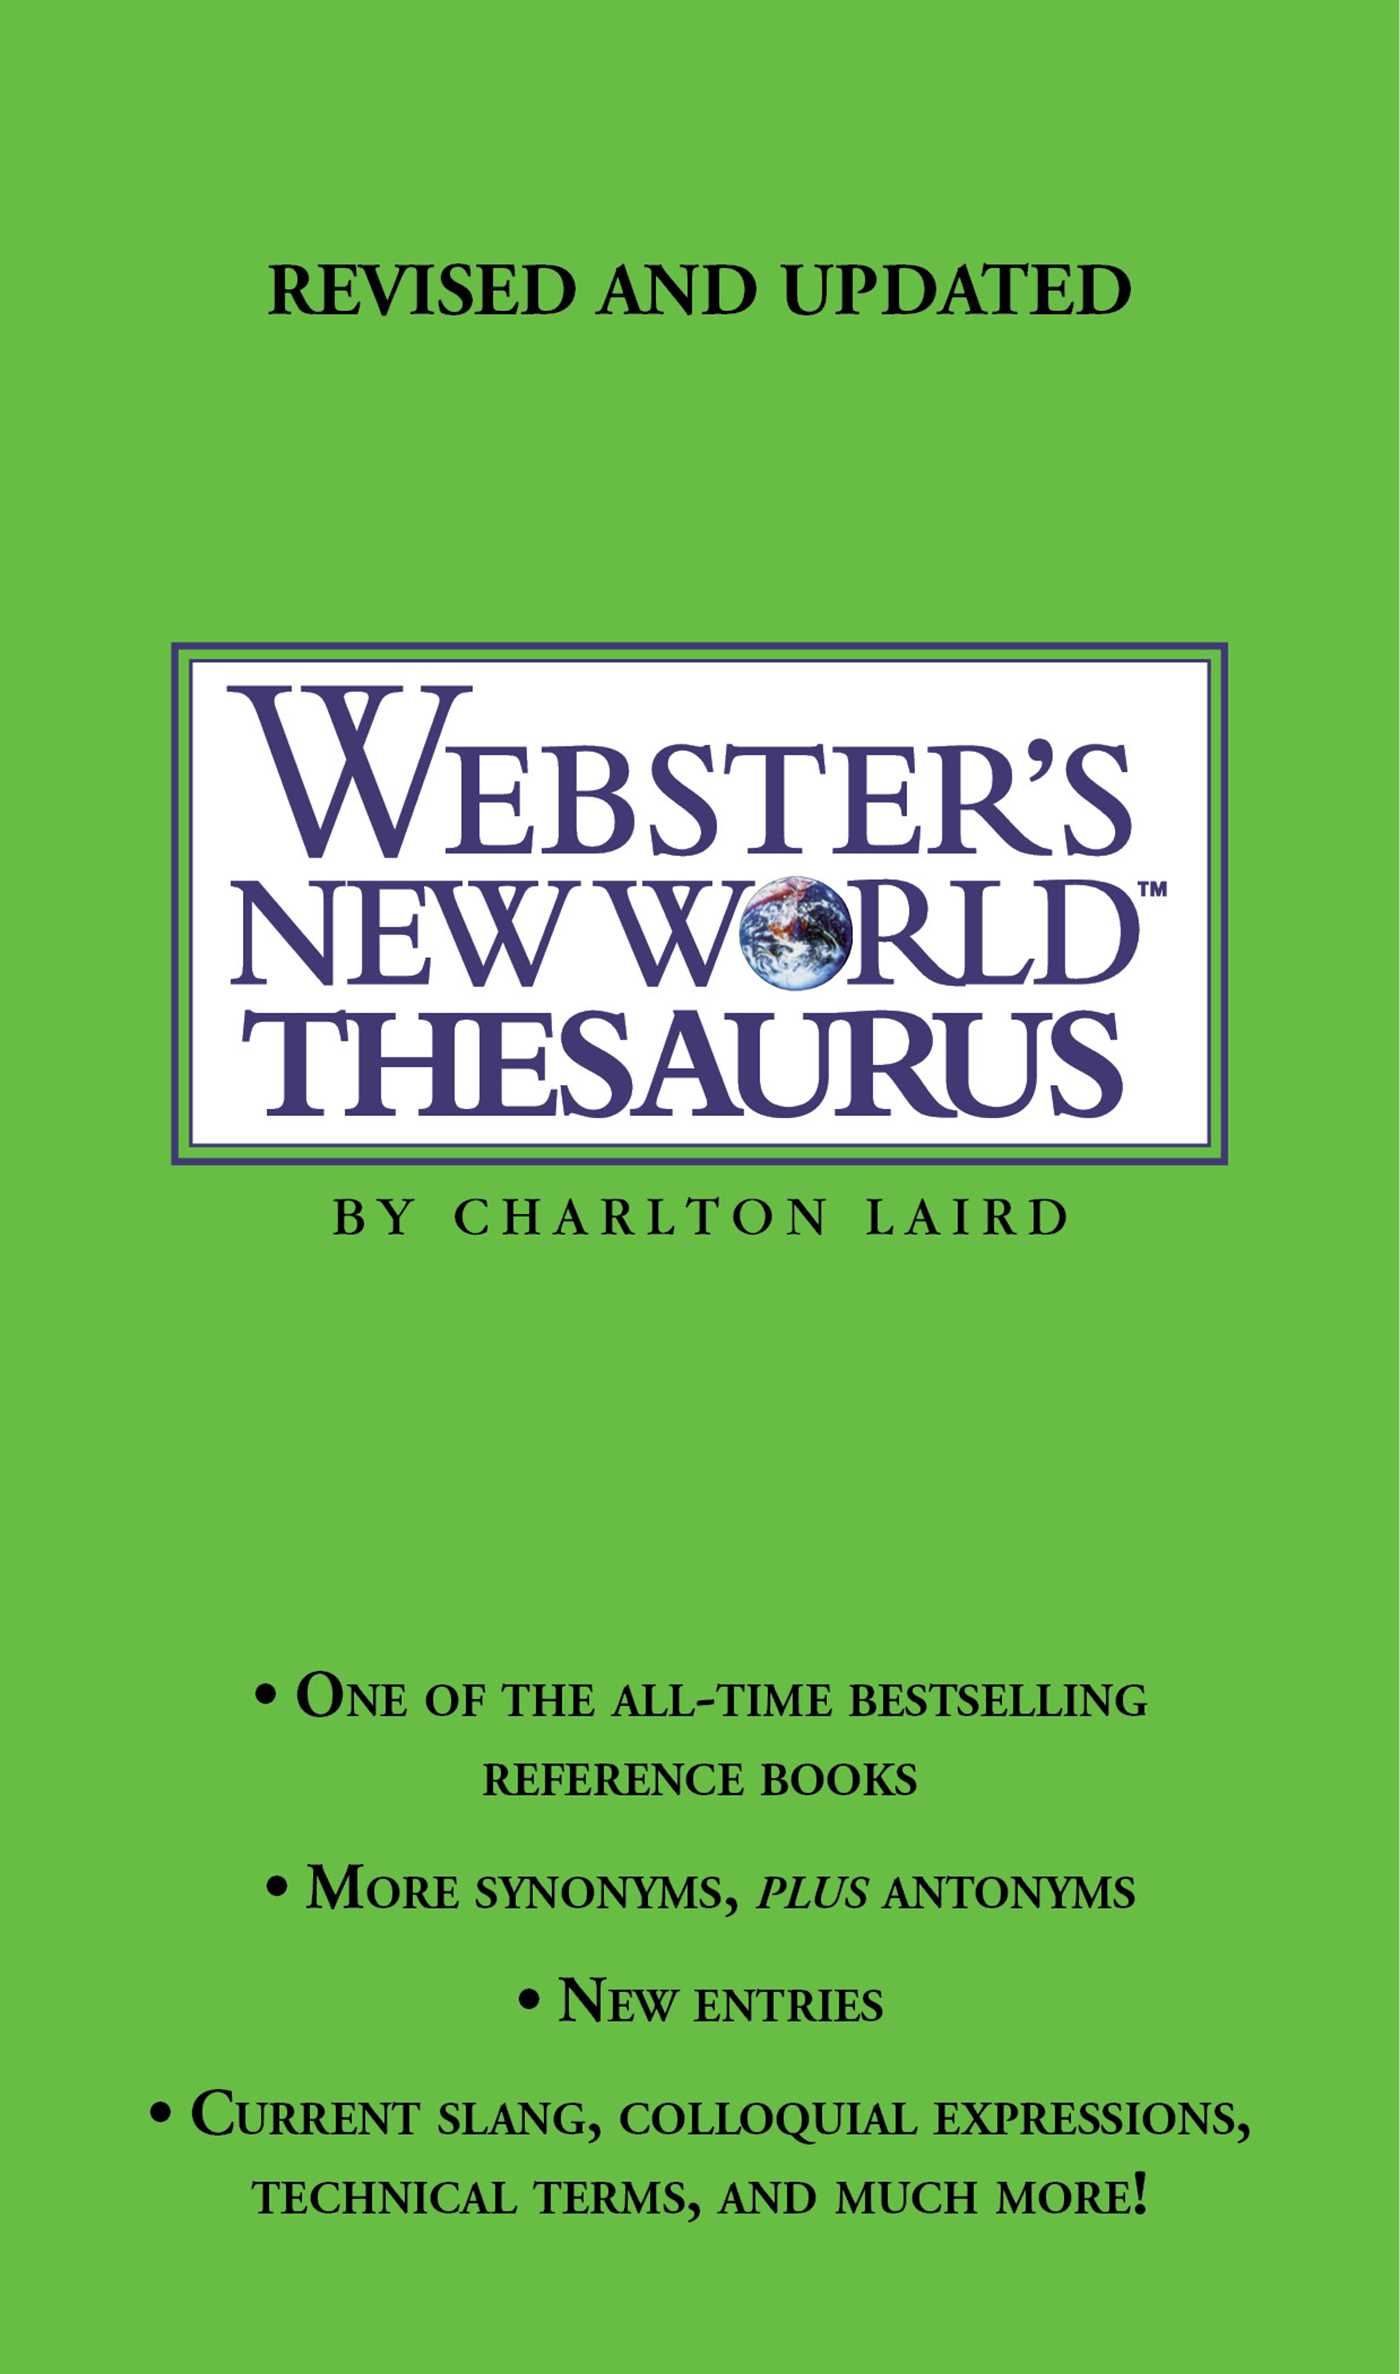 Websters-new-world-thesaurus-9780743470711_hr